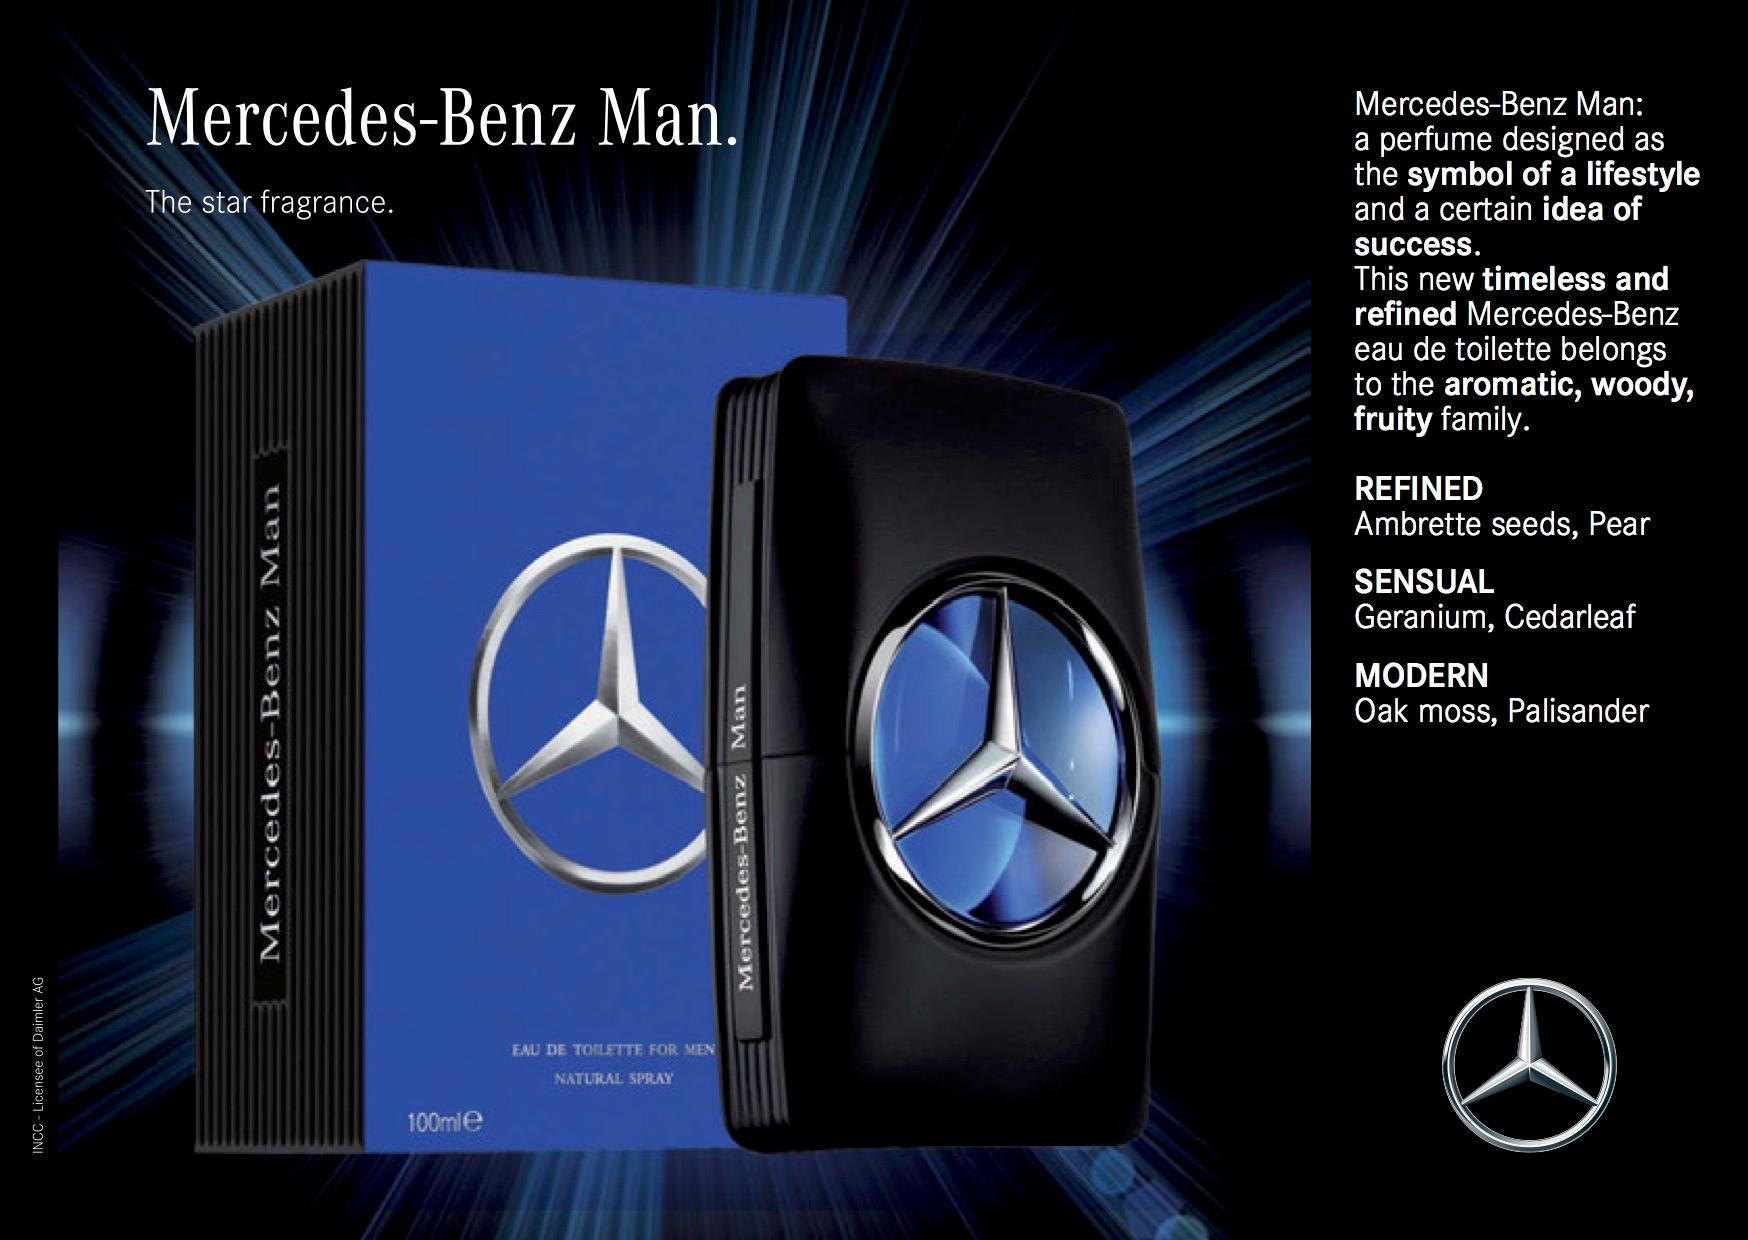 concept mercedes the fool card range will eqa car motley little credit electric small this build investing benz ele long